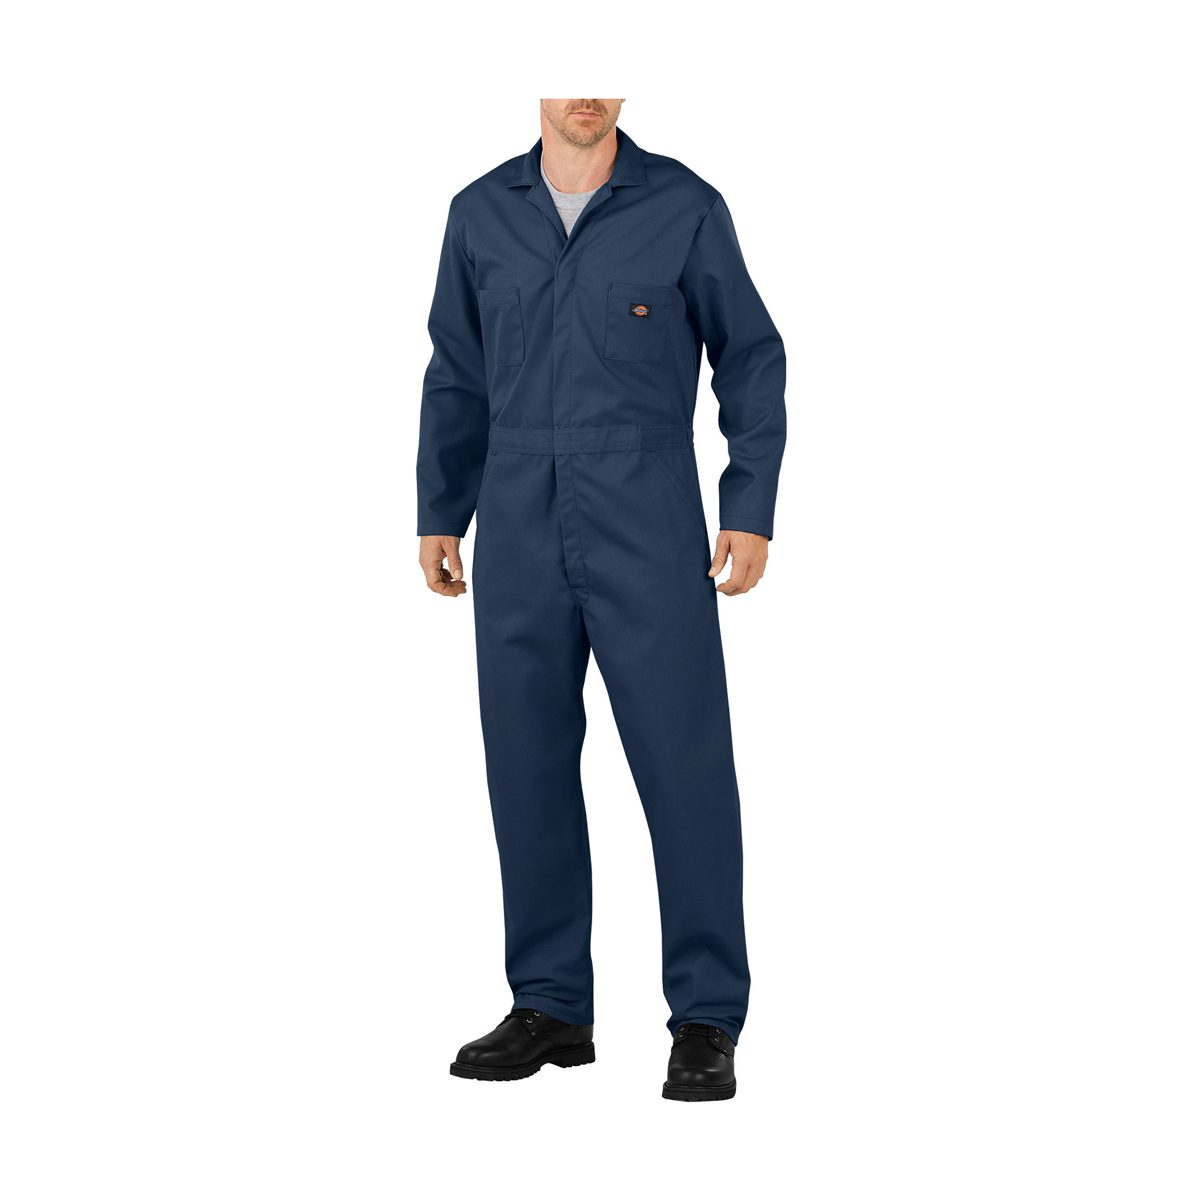 Coveralls for Dirty Jobs